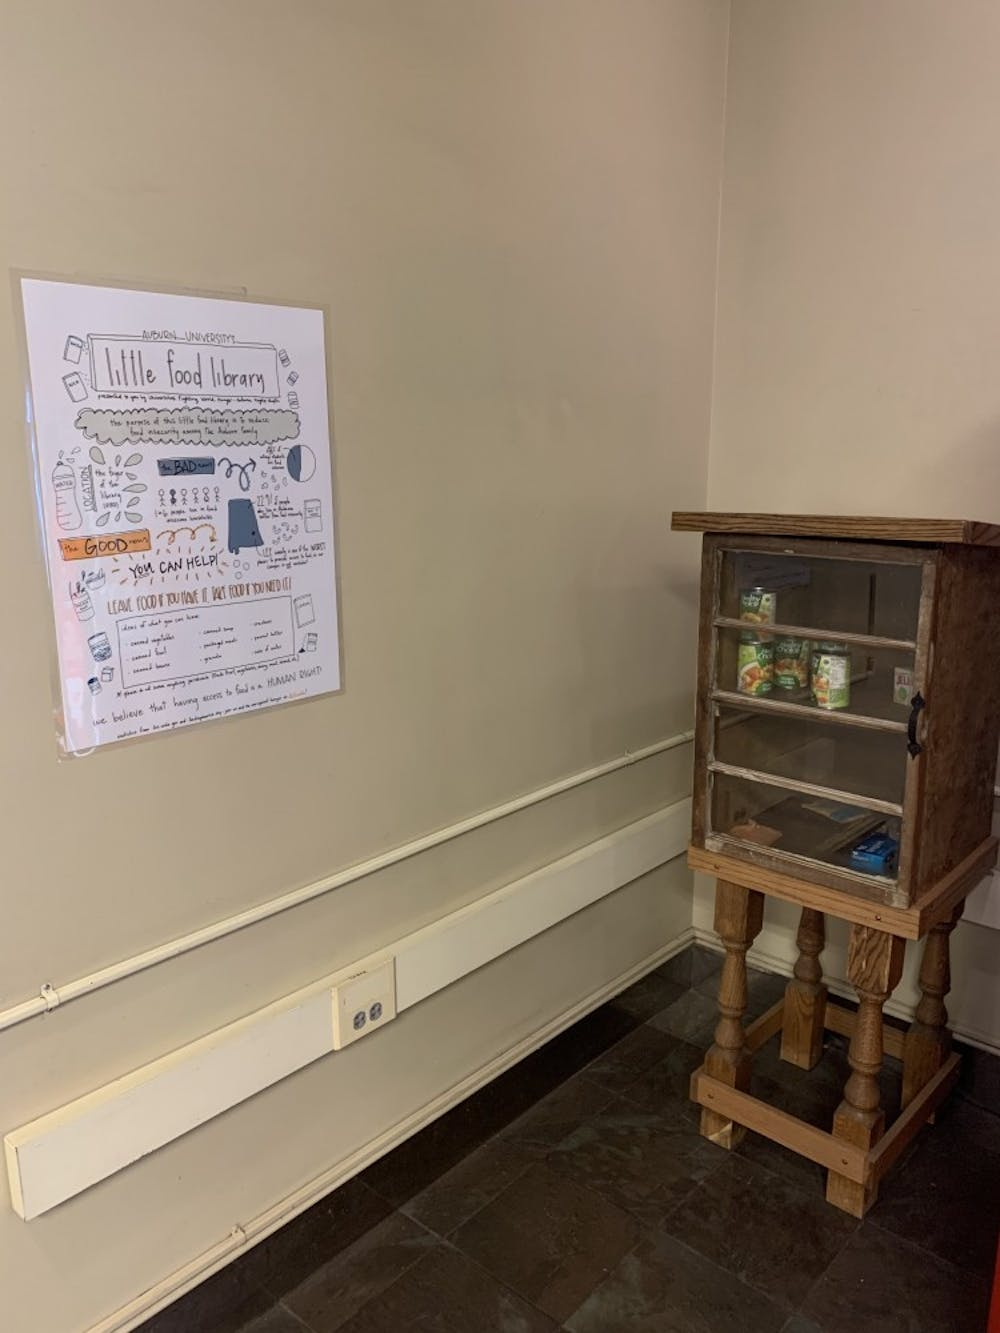 Little Food Library fights food insecurity on campus